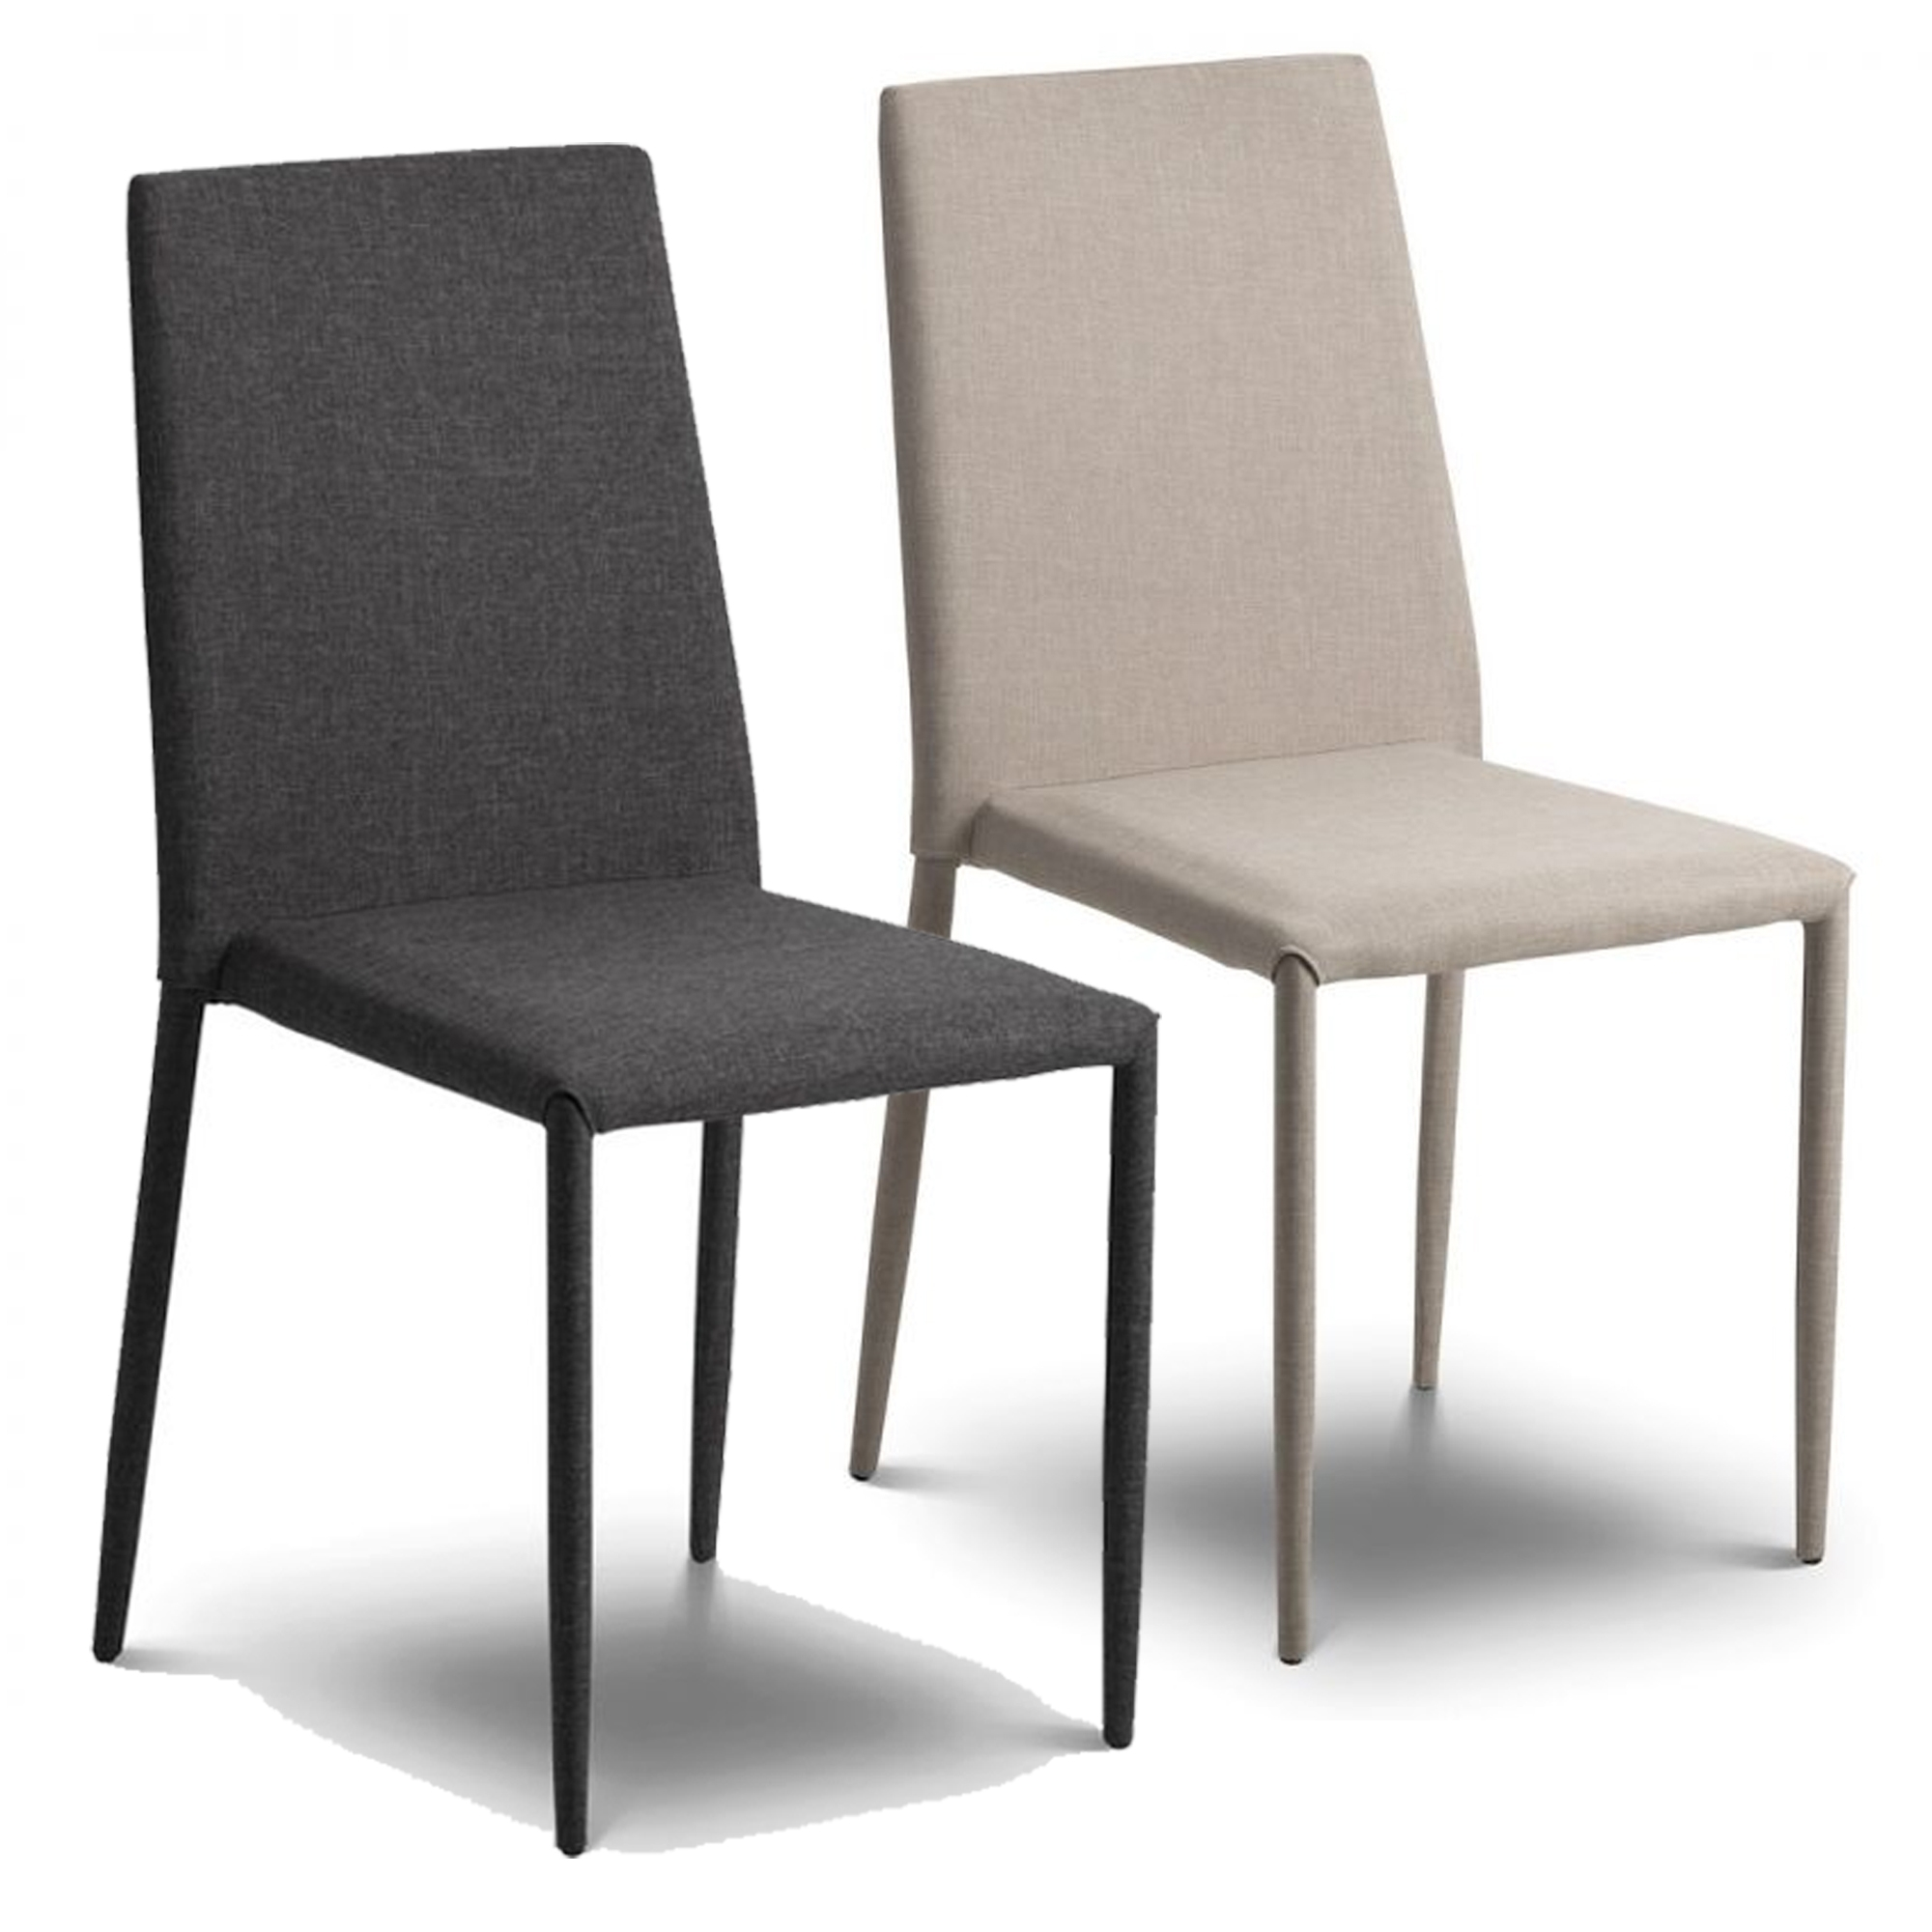 Awesome Jazz Fabric Dining Chair Creativecarmelina Interior Chair Design Creativecarmelinacom